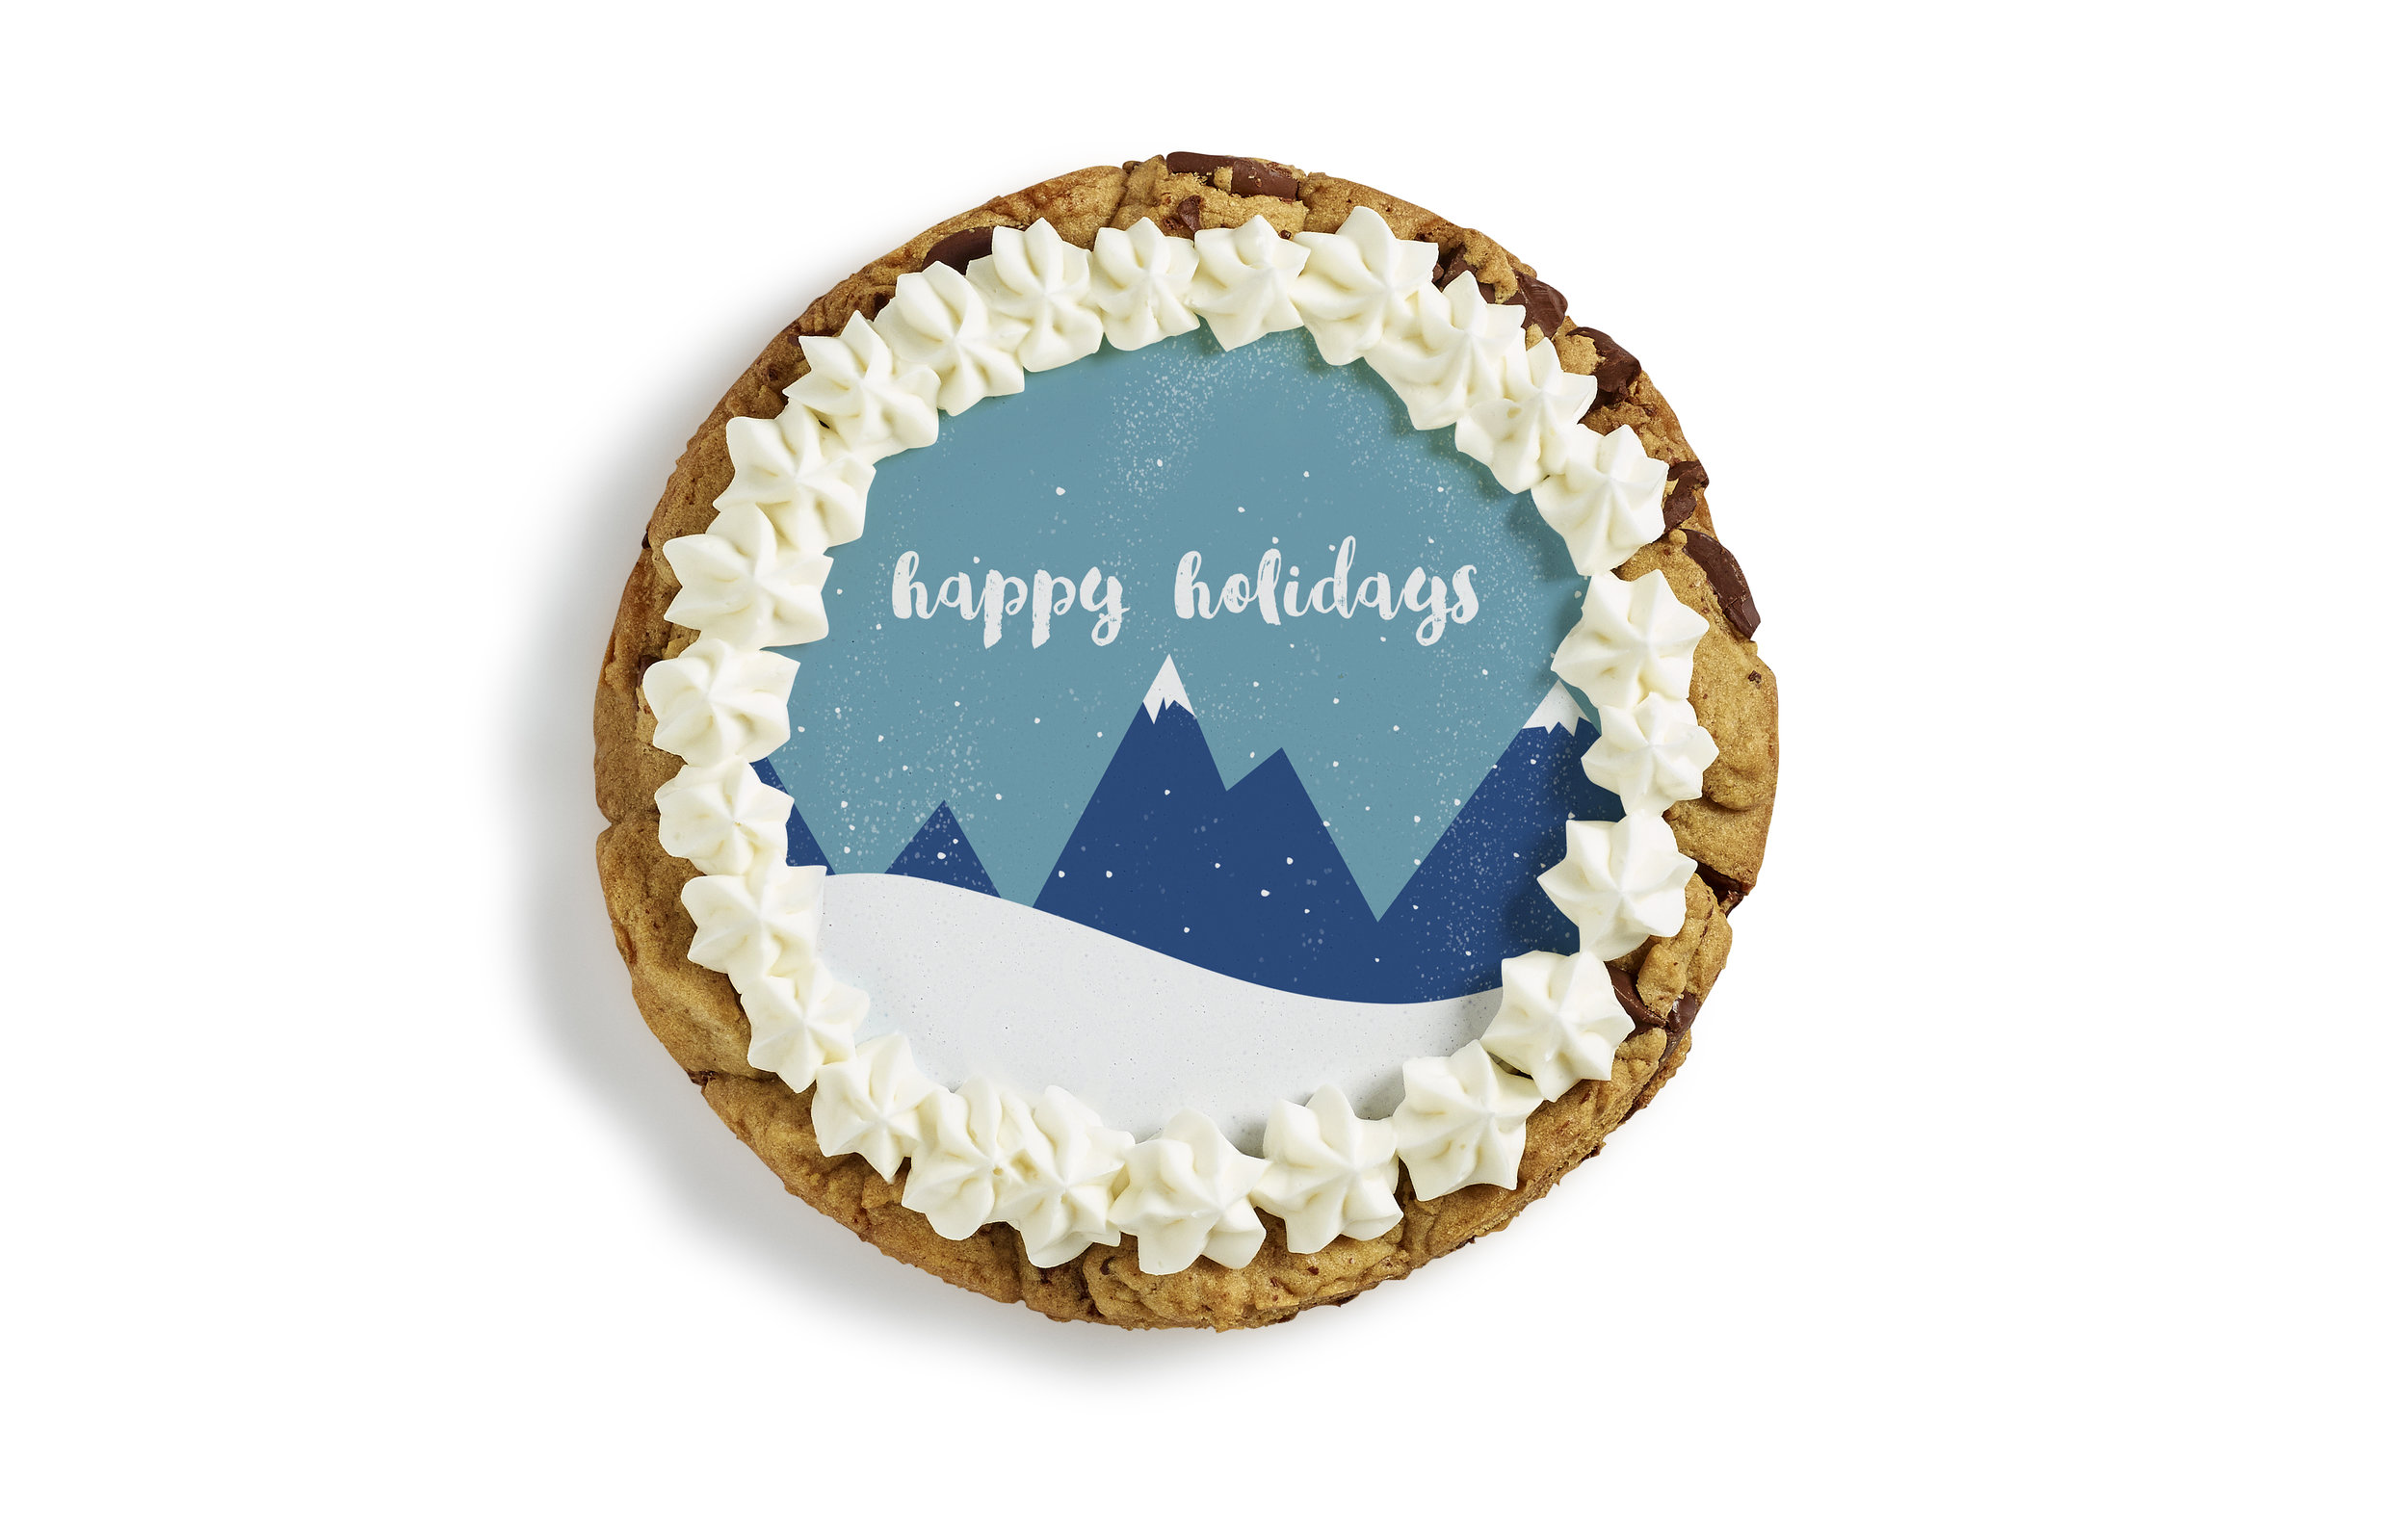 Mini_Cookie_Cake_holiday_1.jpg